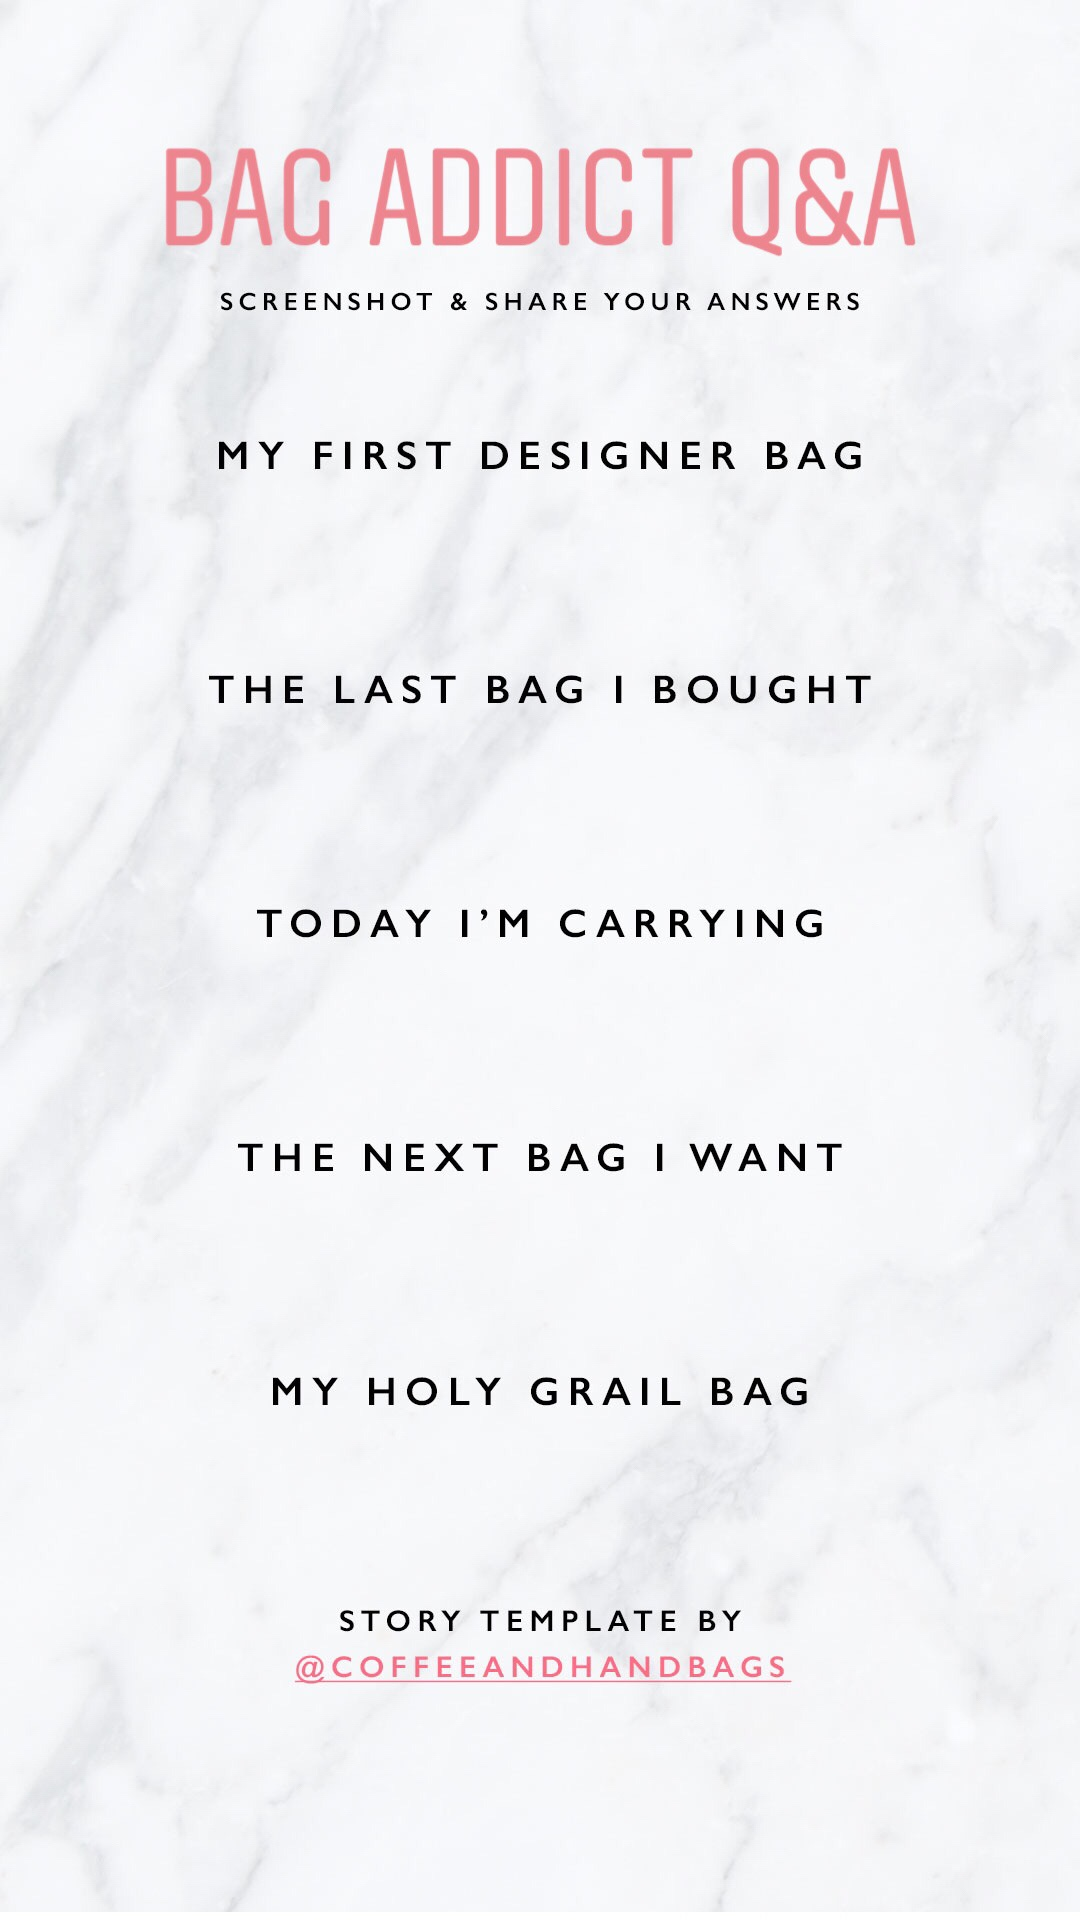 Instagram Story Template Bag Addict Q&A | CoffeeAndHandbags.com